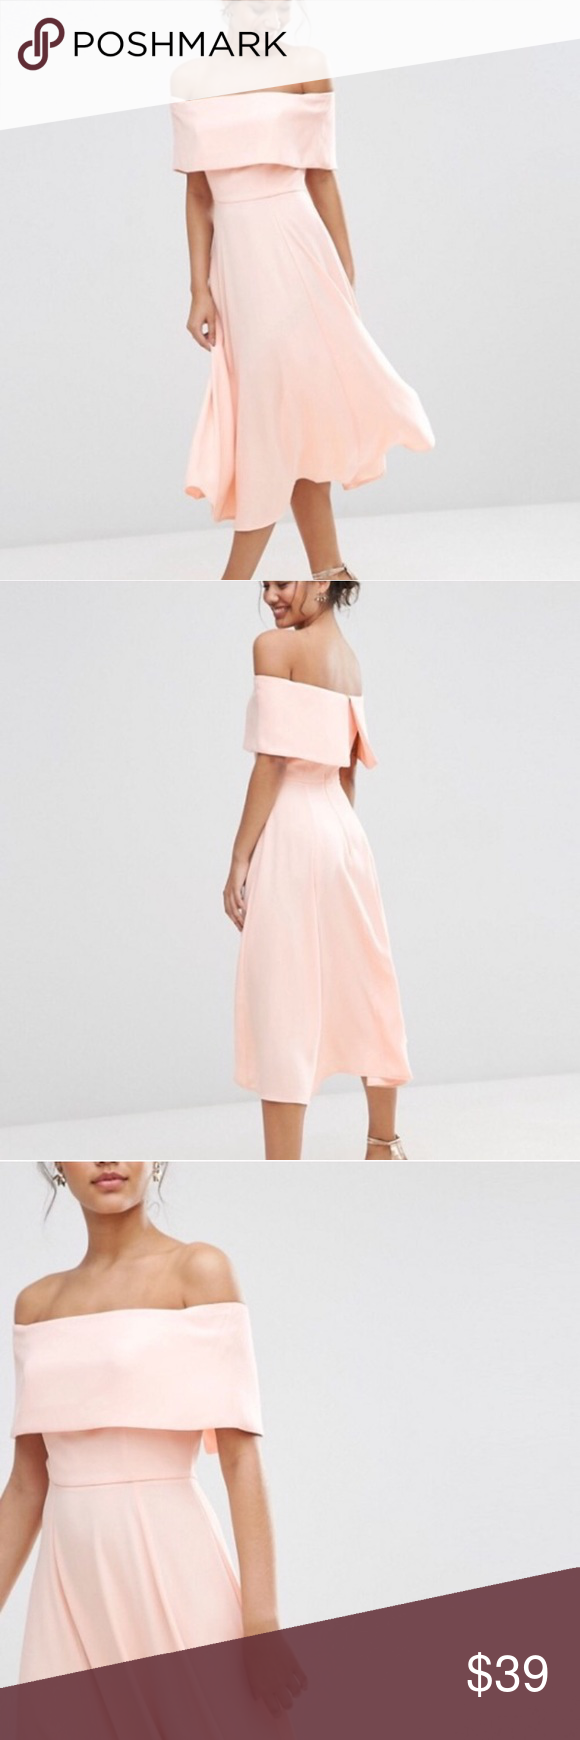 ASOS Blush Pink Off the Shoulder Dress NWOT blush pink off the shoulder fit and flare dress. Purchased new from another Posher but the dress is a bit too snug in the bust. US size 4, UK size 8. ASOS Dresses Midi